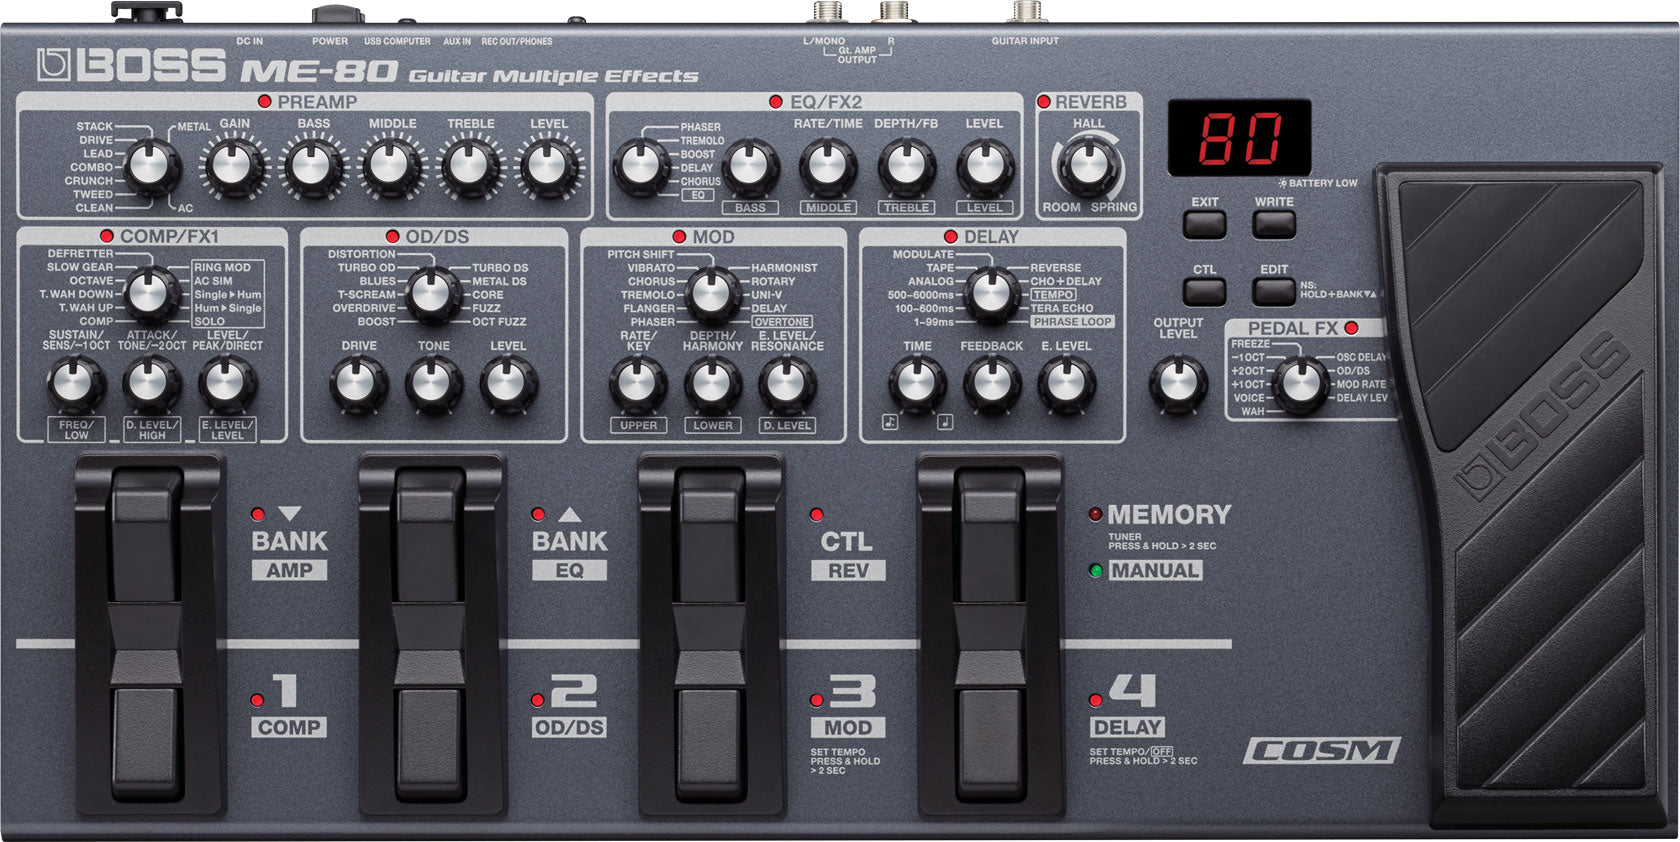 BOSS ME-80 - GUITAR MULTI EFFECTS PROCESSOR